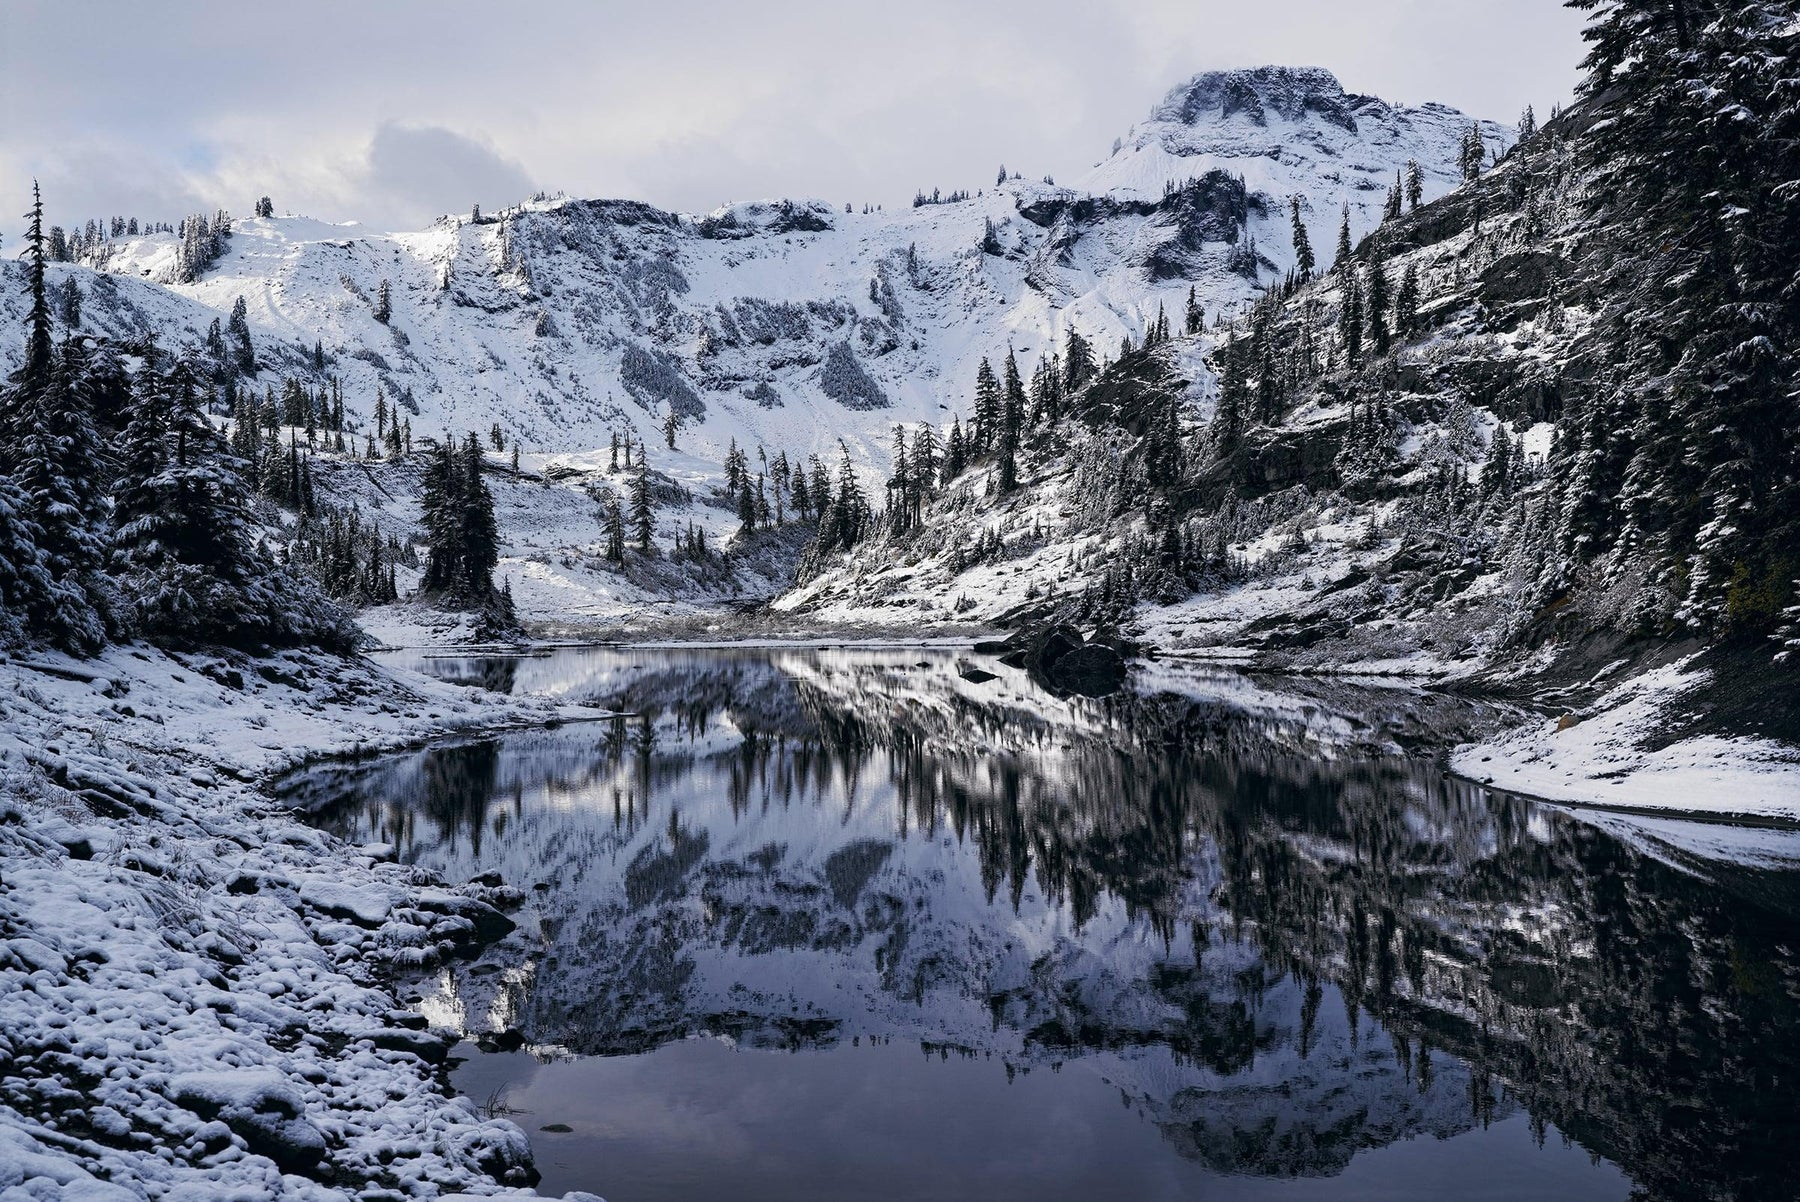 Snow covered shoreline and forest surrounding the a lake in front of Mount Baker Washington